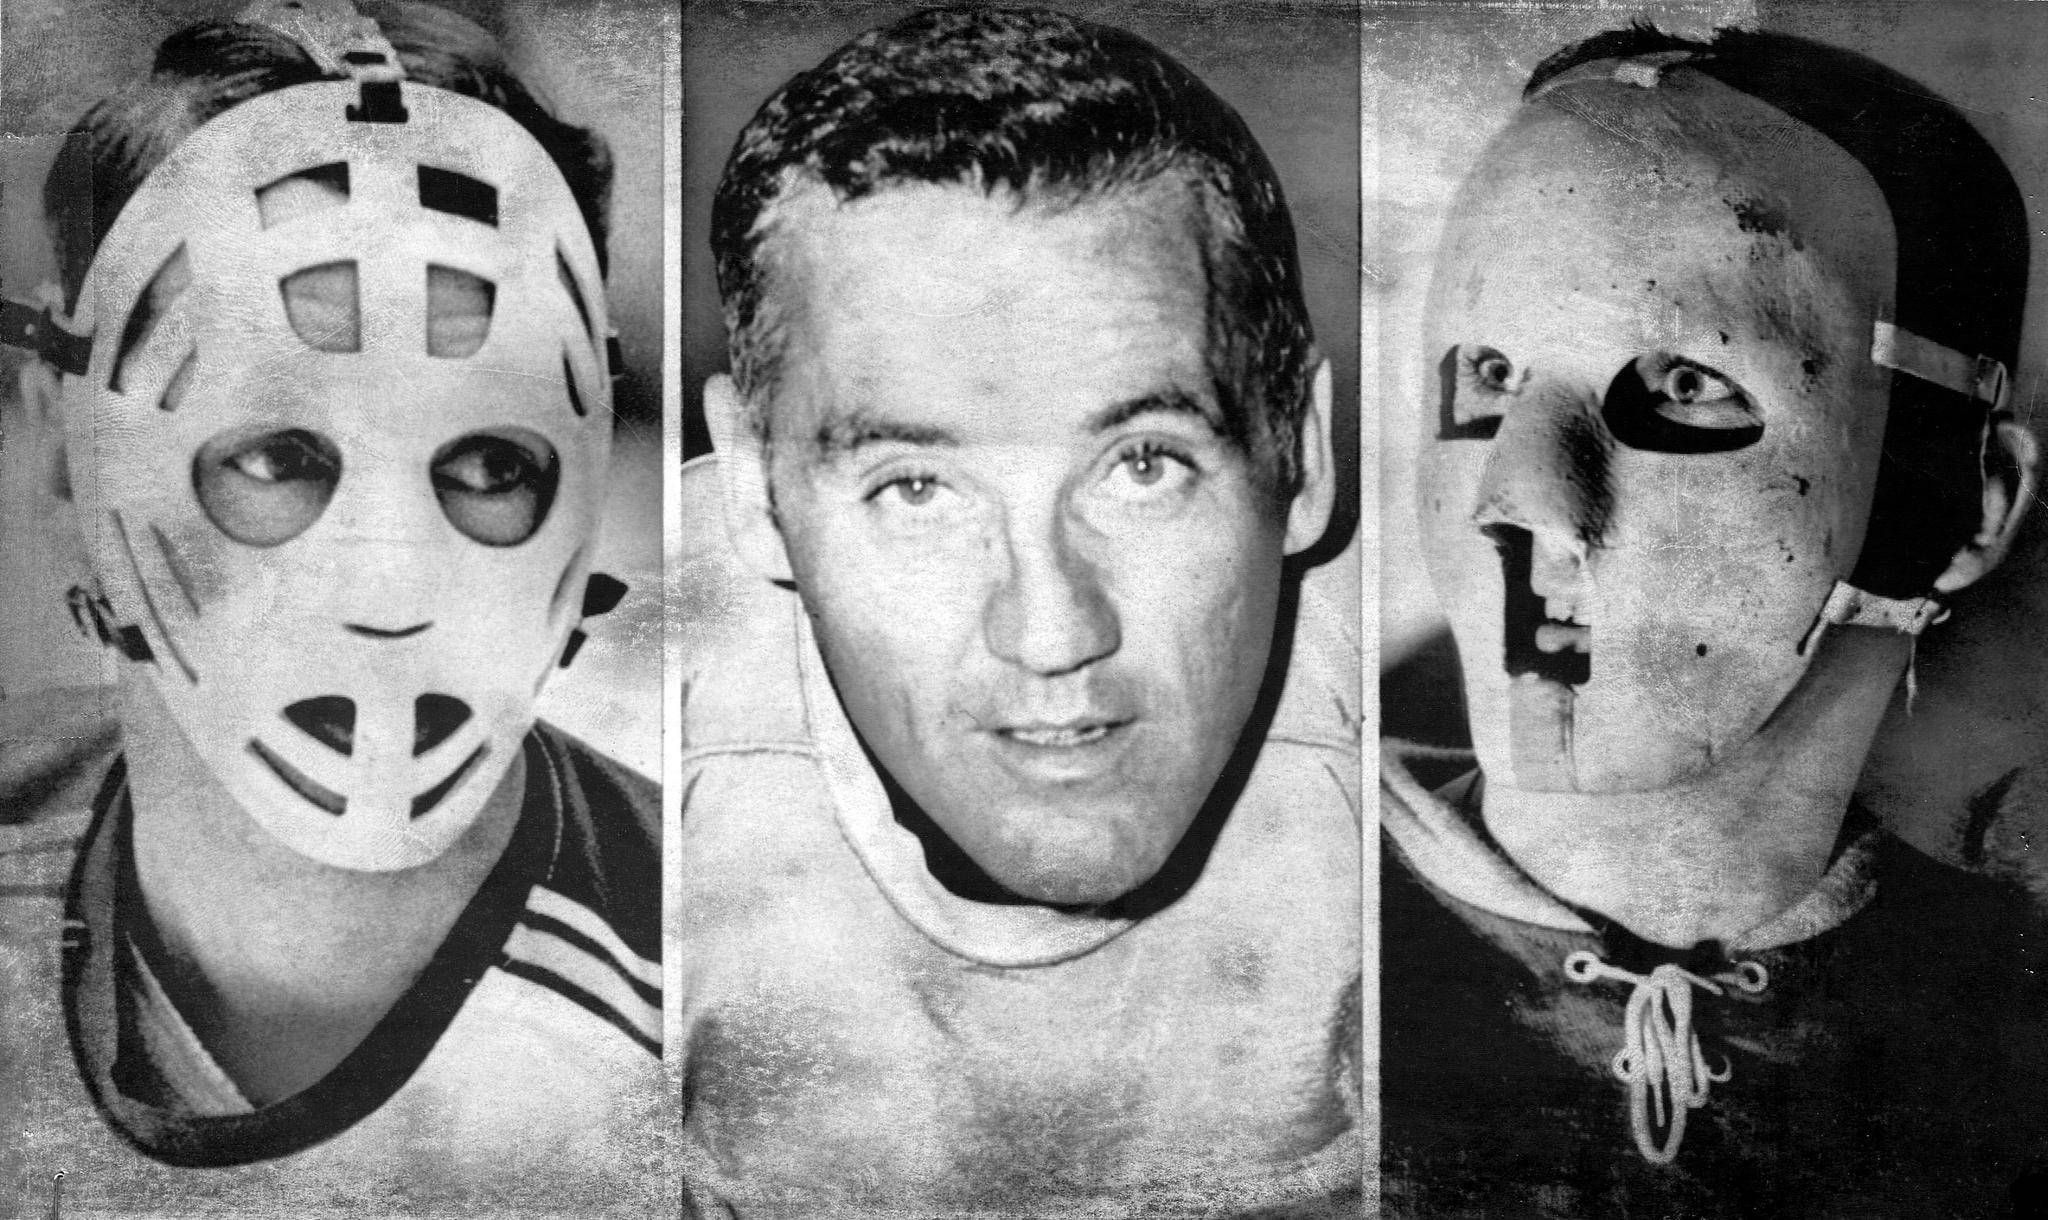 Game Changer How The Goalie Mask Transformed The Face Of Hockey